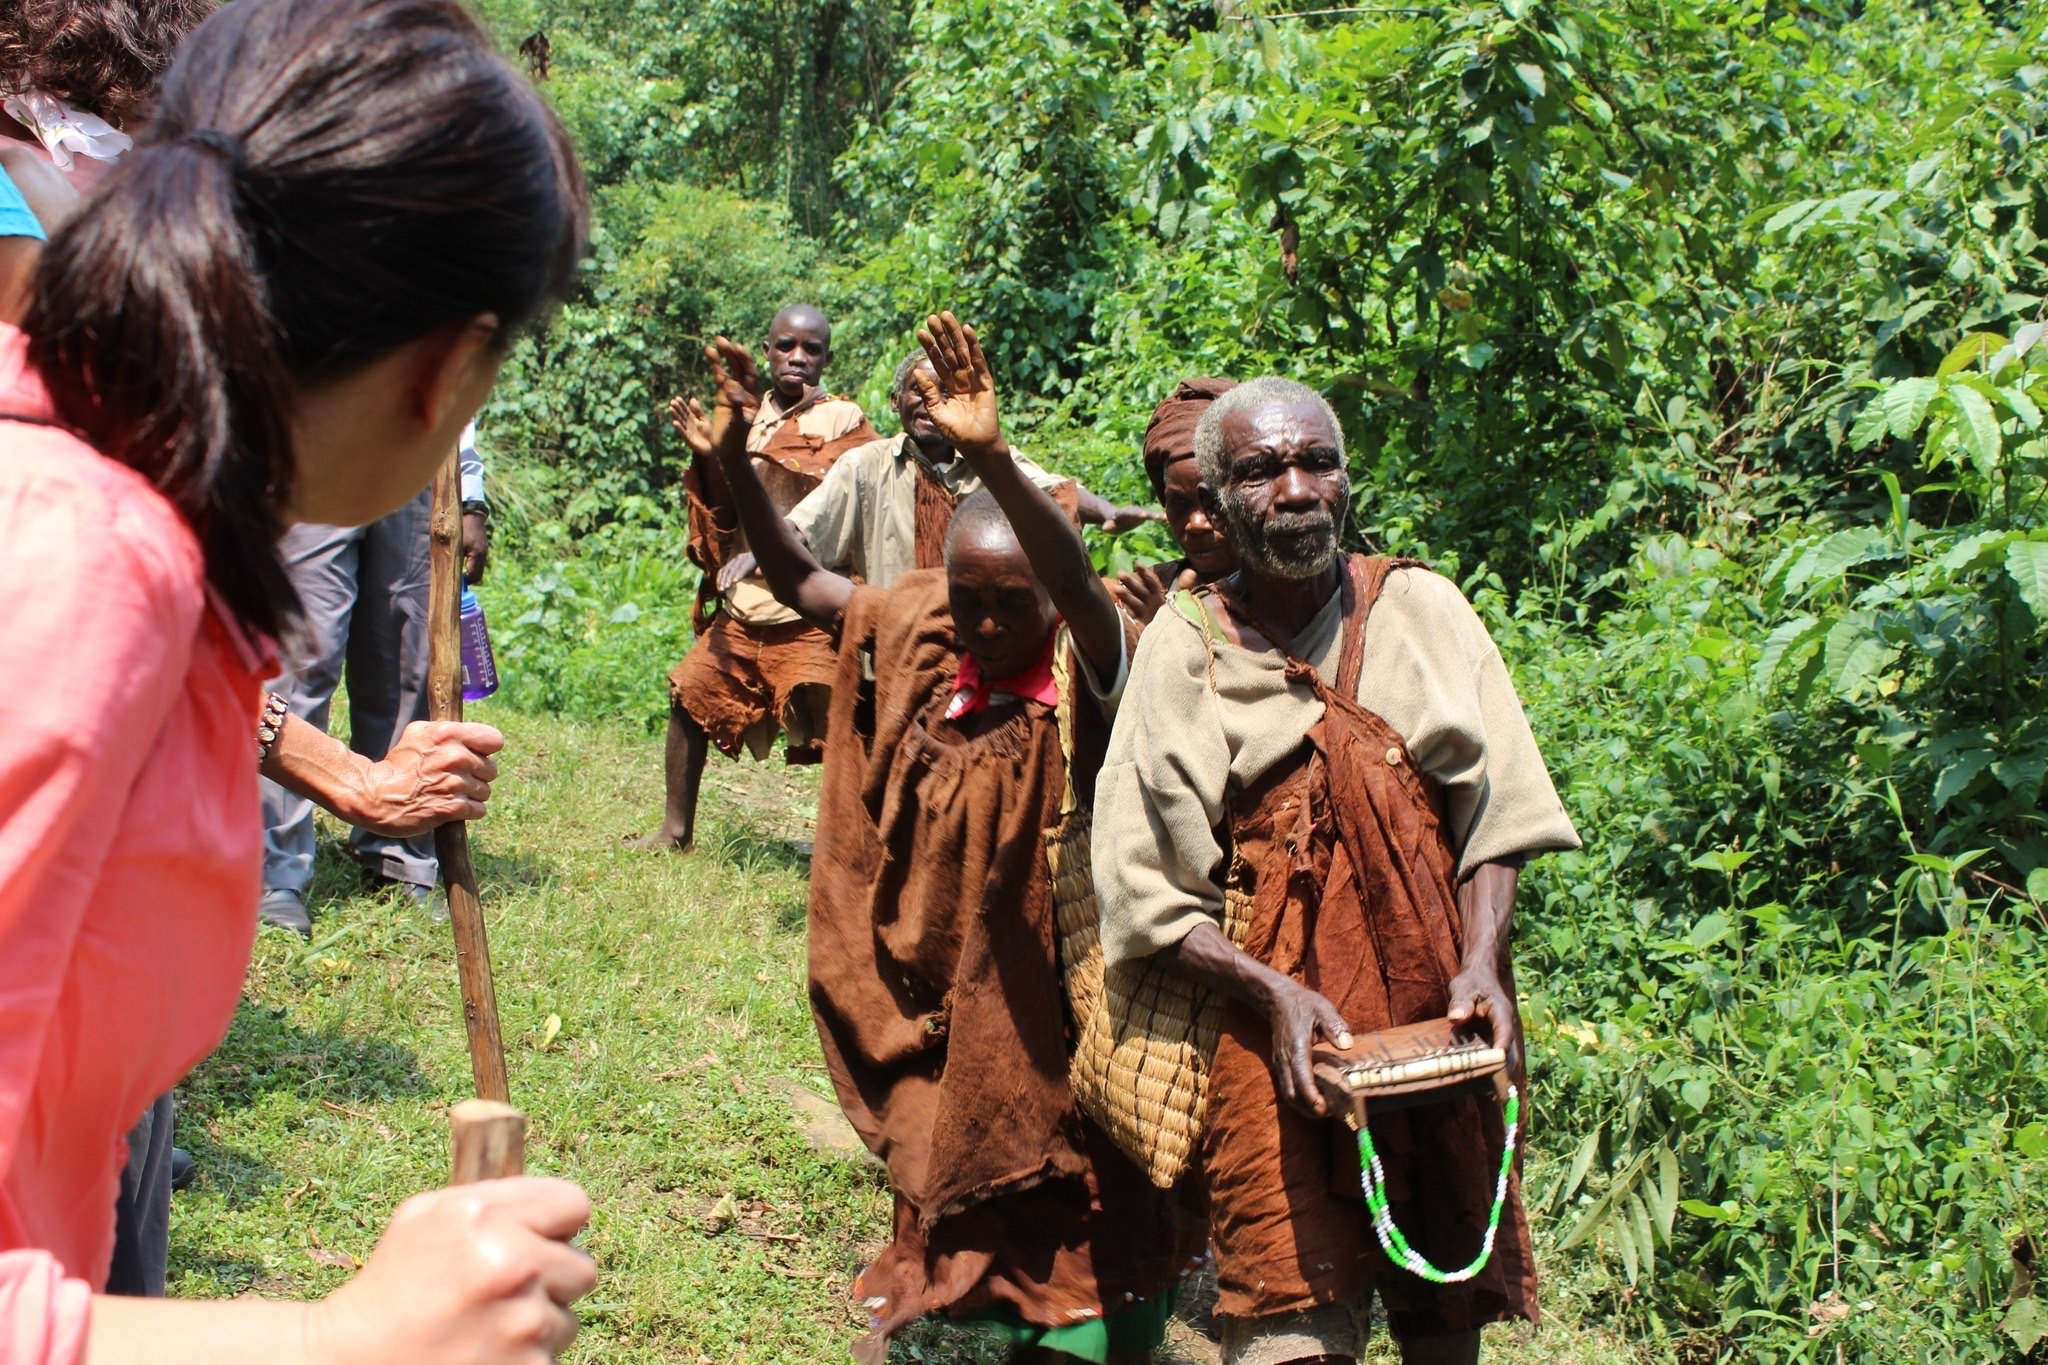 batwa trail in Mgahinga Gorilla national park